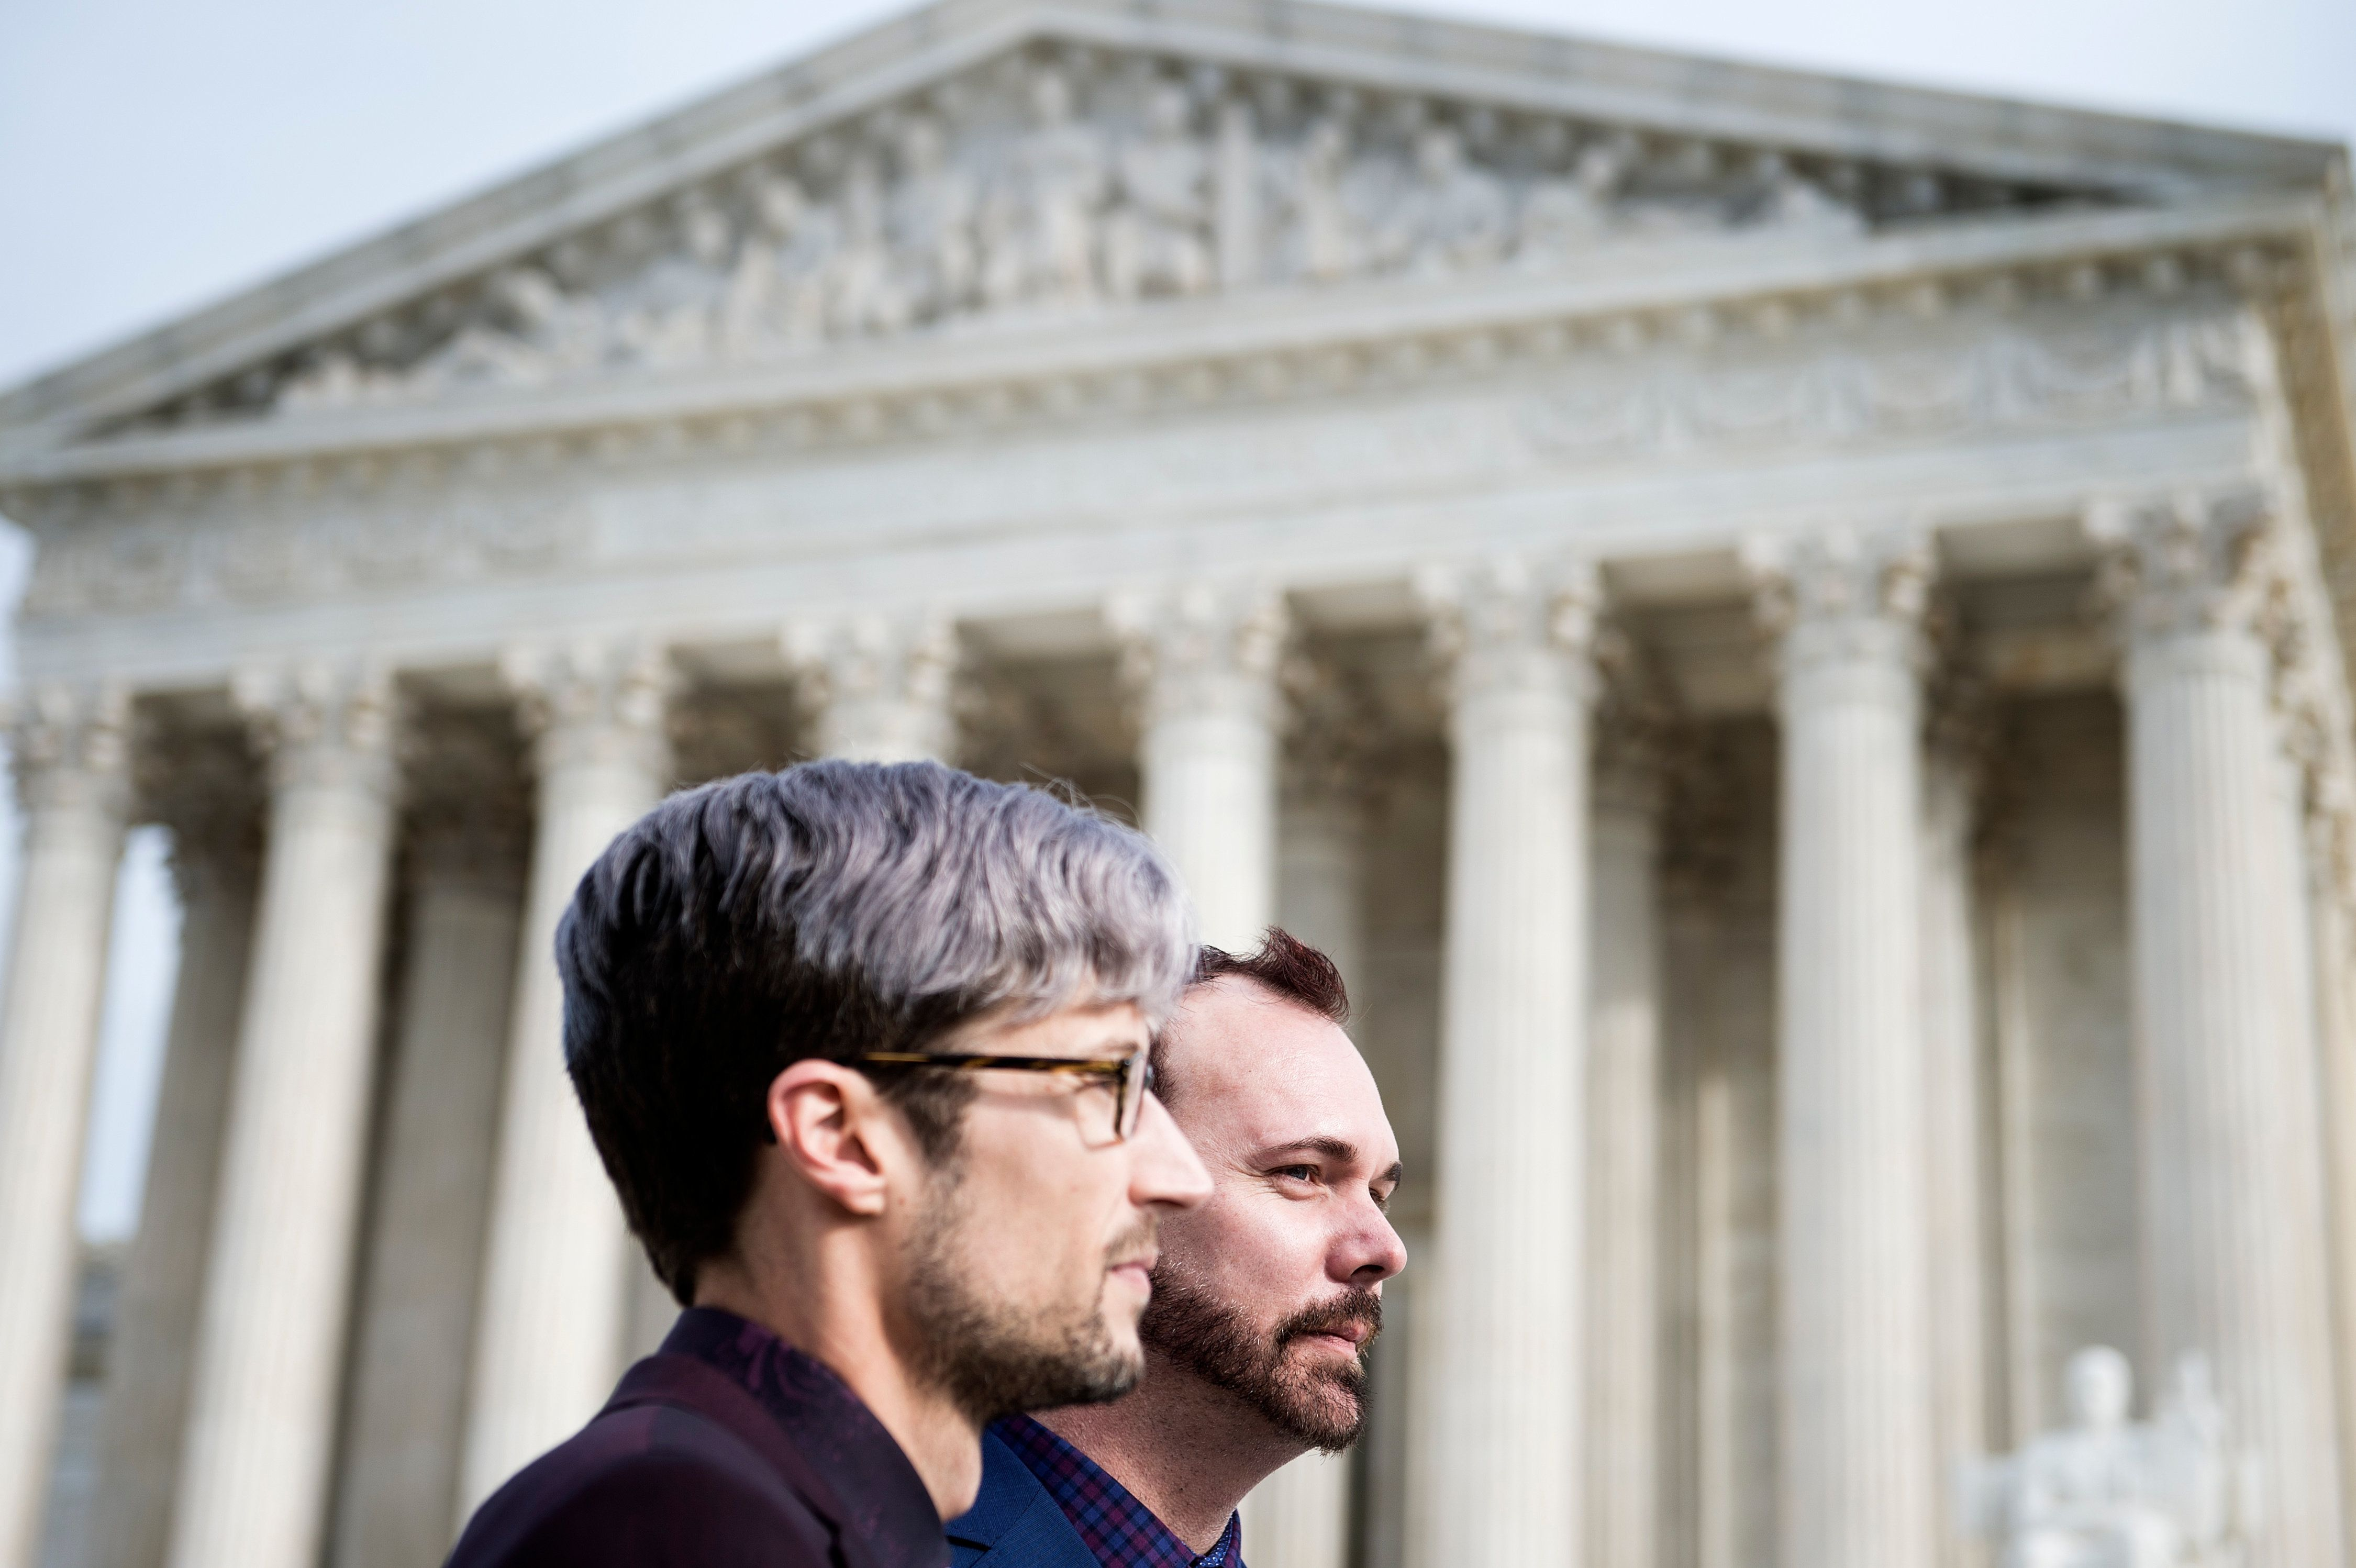 Dave Mullins, left, and Charlie Craig outside the Supreme Court after arguments in Masterpiece Cakeshop v. Colorado Civil Rig